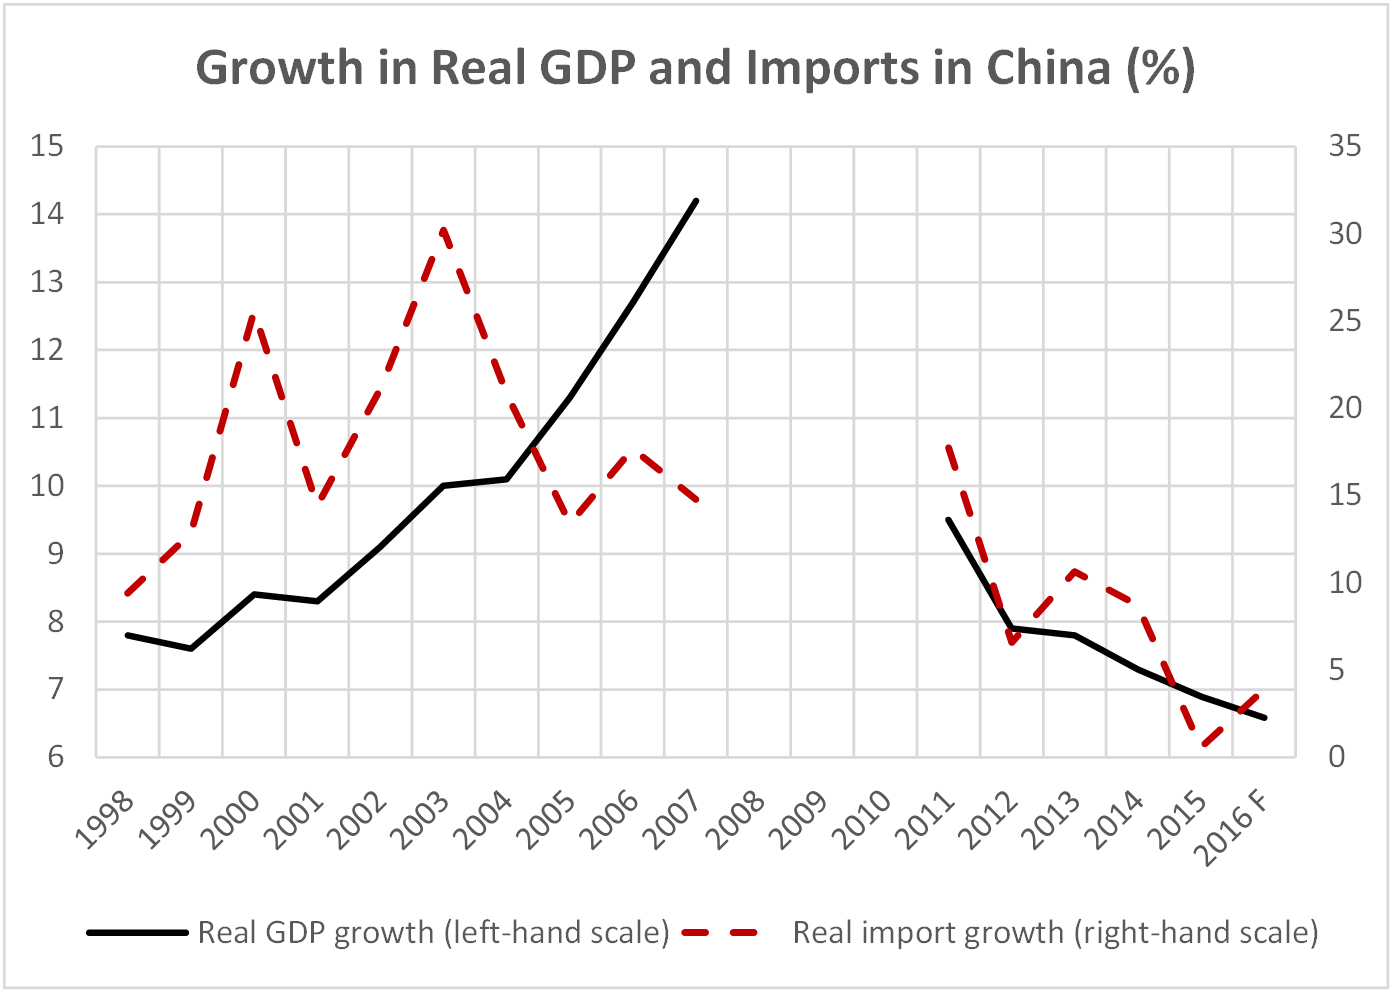 Chart 1.7 - Growth in Real GDP and Imports in China